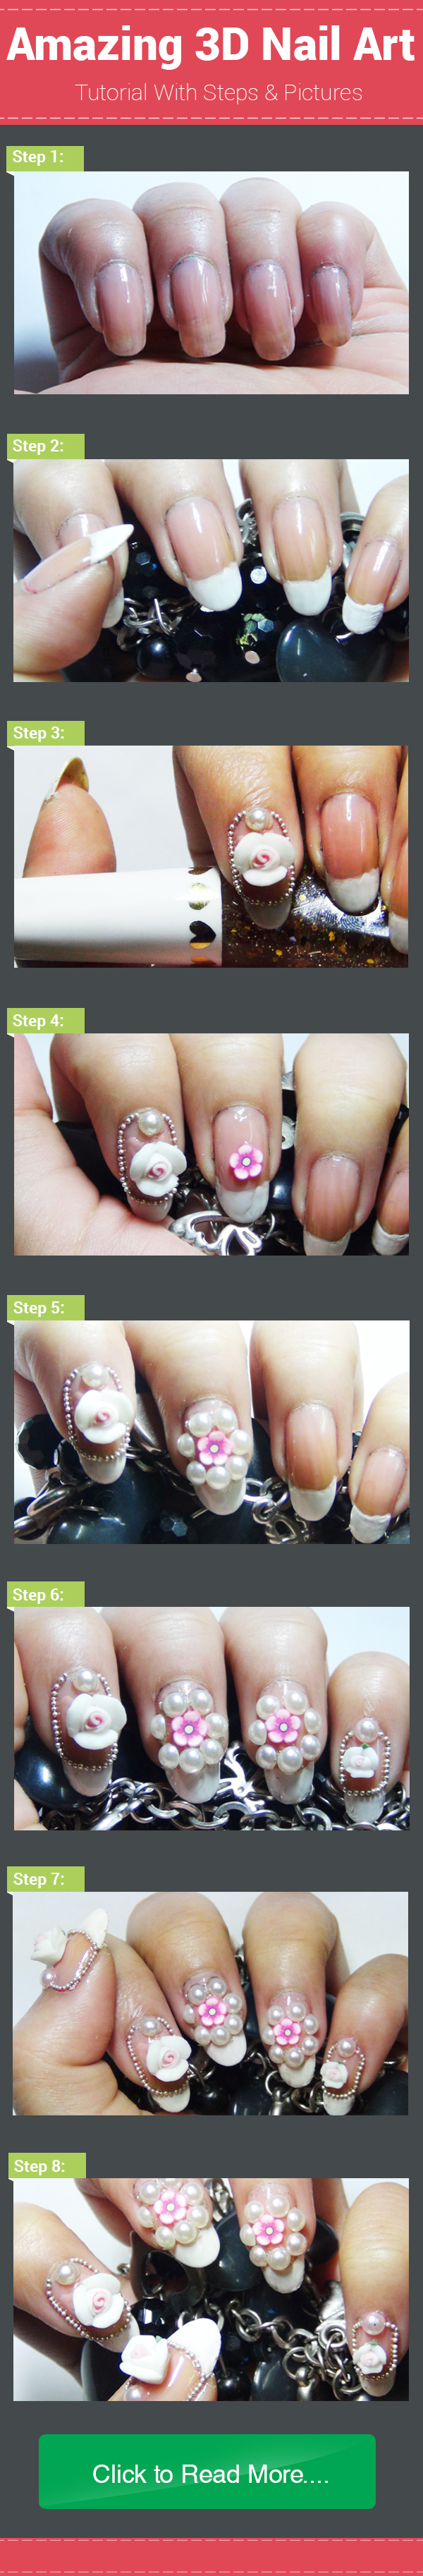 Top 30 3D Nail Art Designs - Step By Step Tutorials And Pictures ...